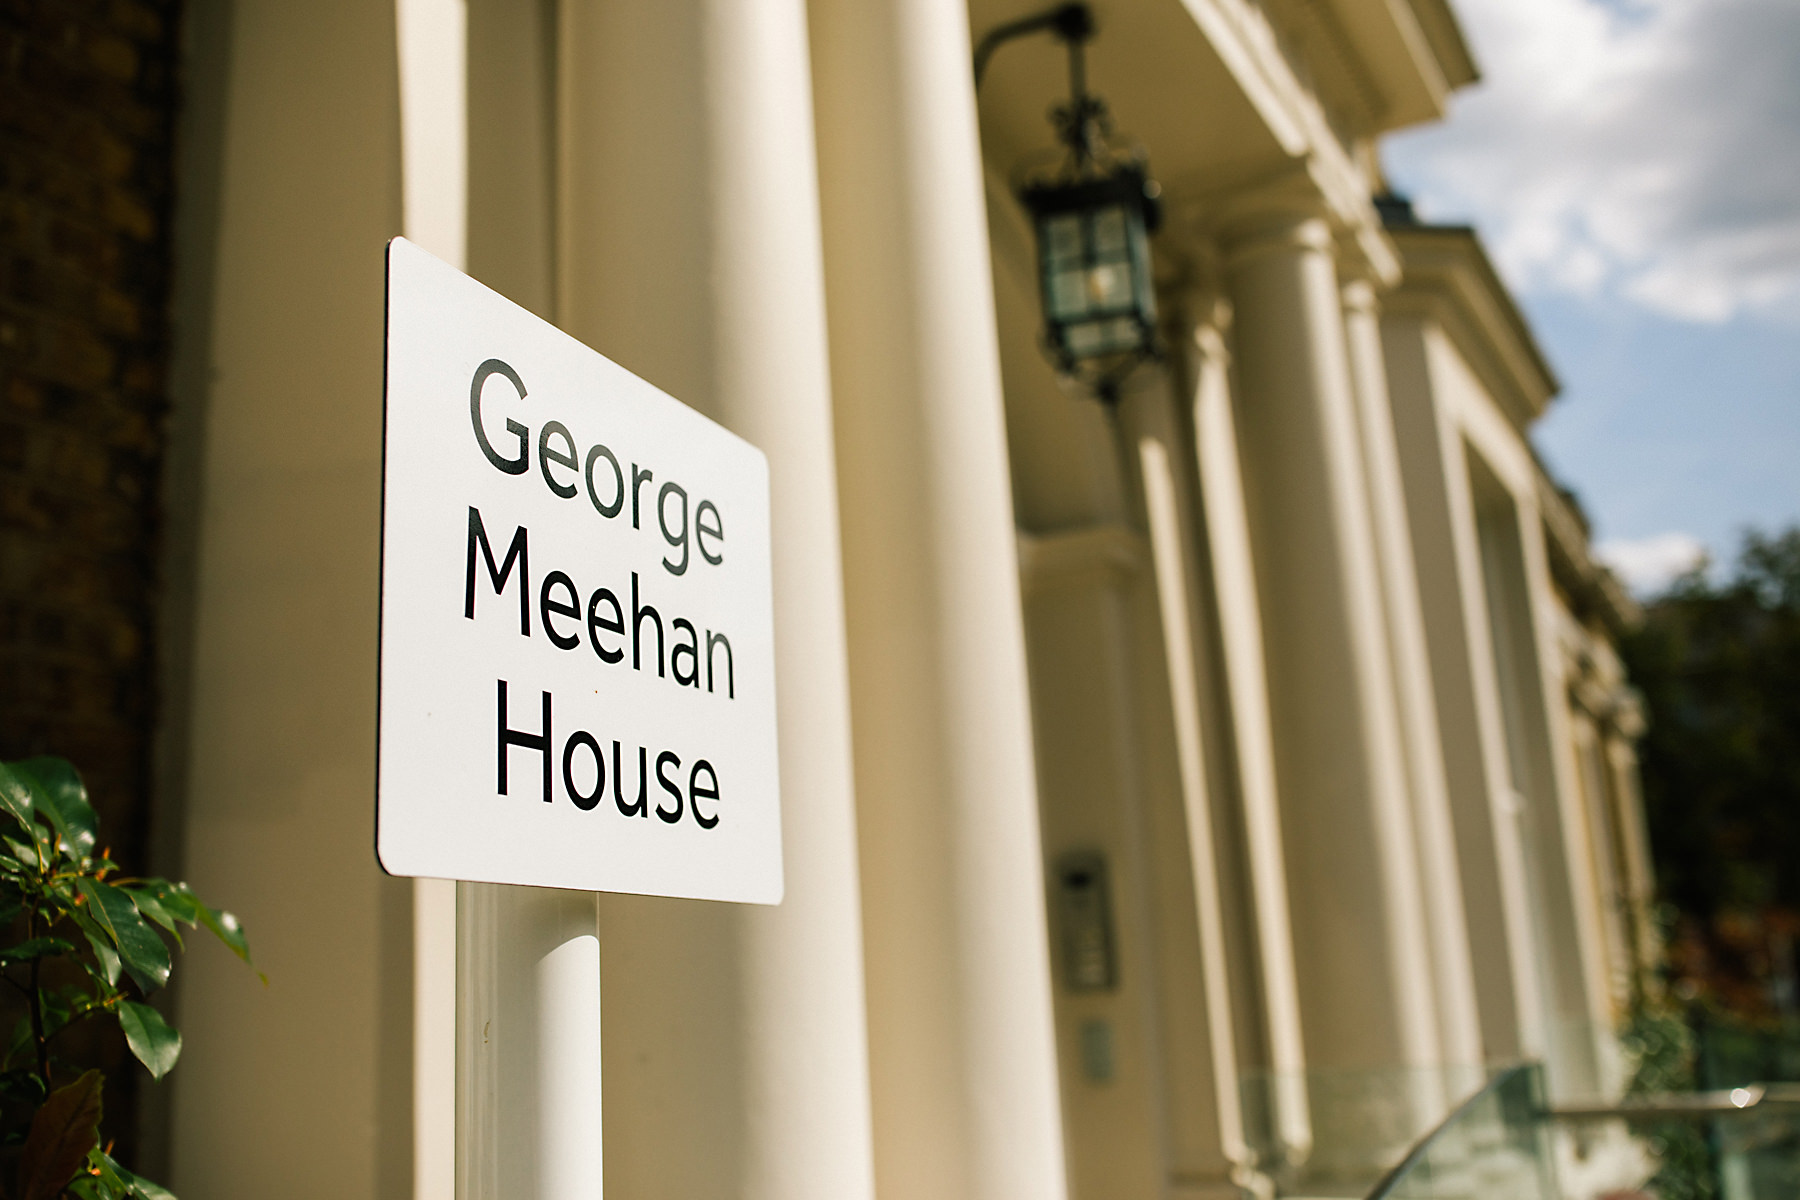 george meehan house wedding